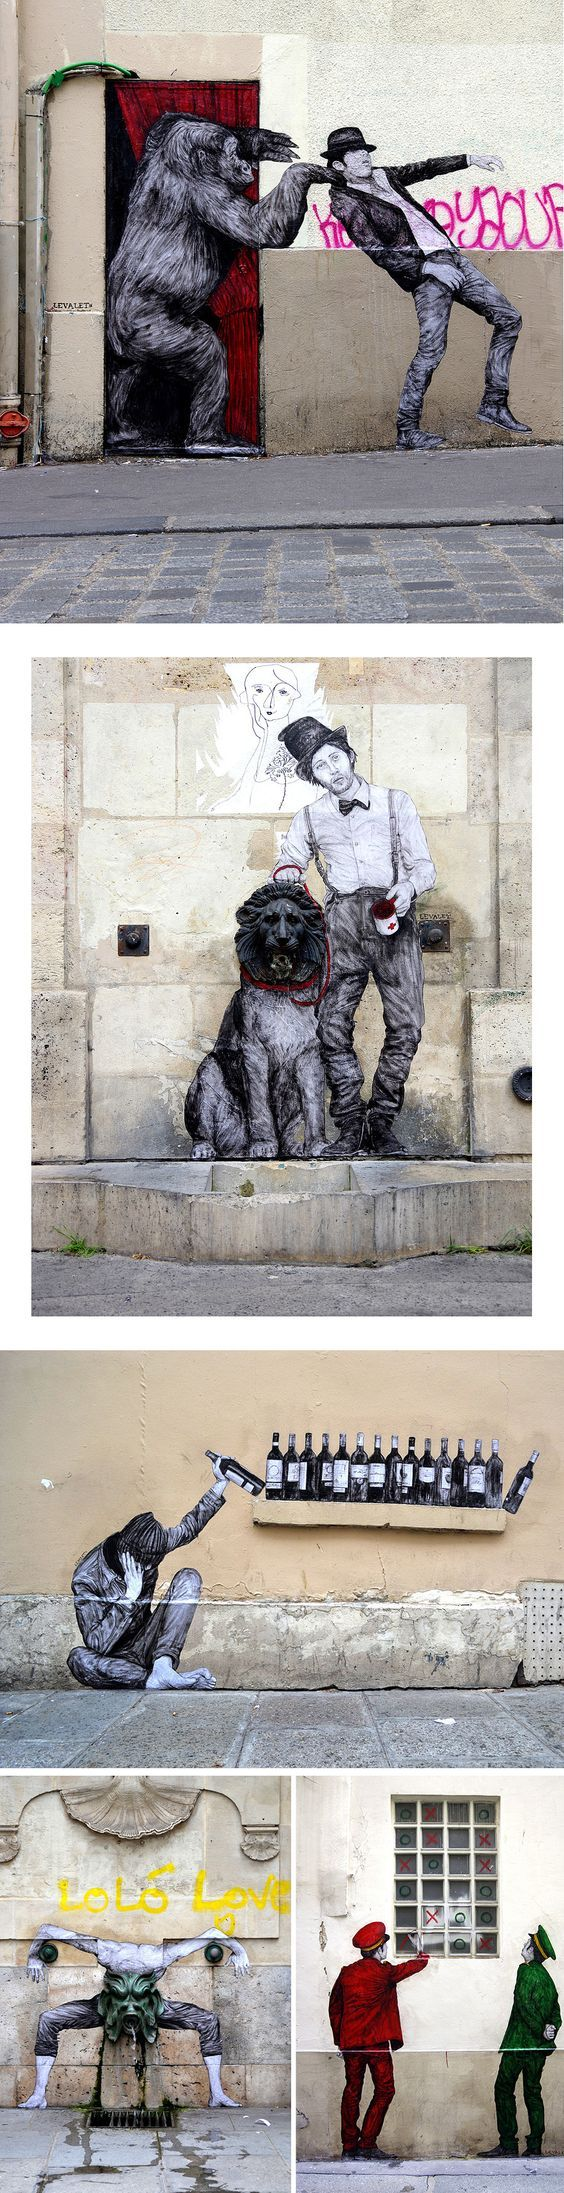 Quirky Site-Specific Wheatpastes by 'Levalet' Bring Humor to the Streets of Paris